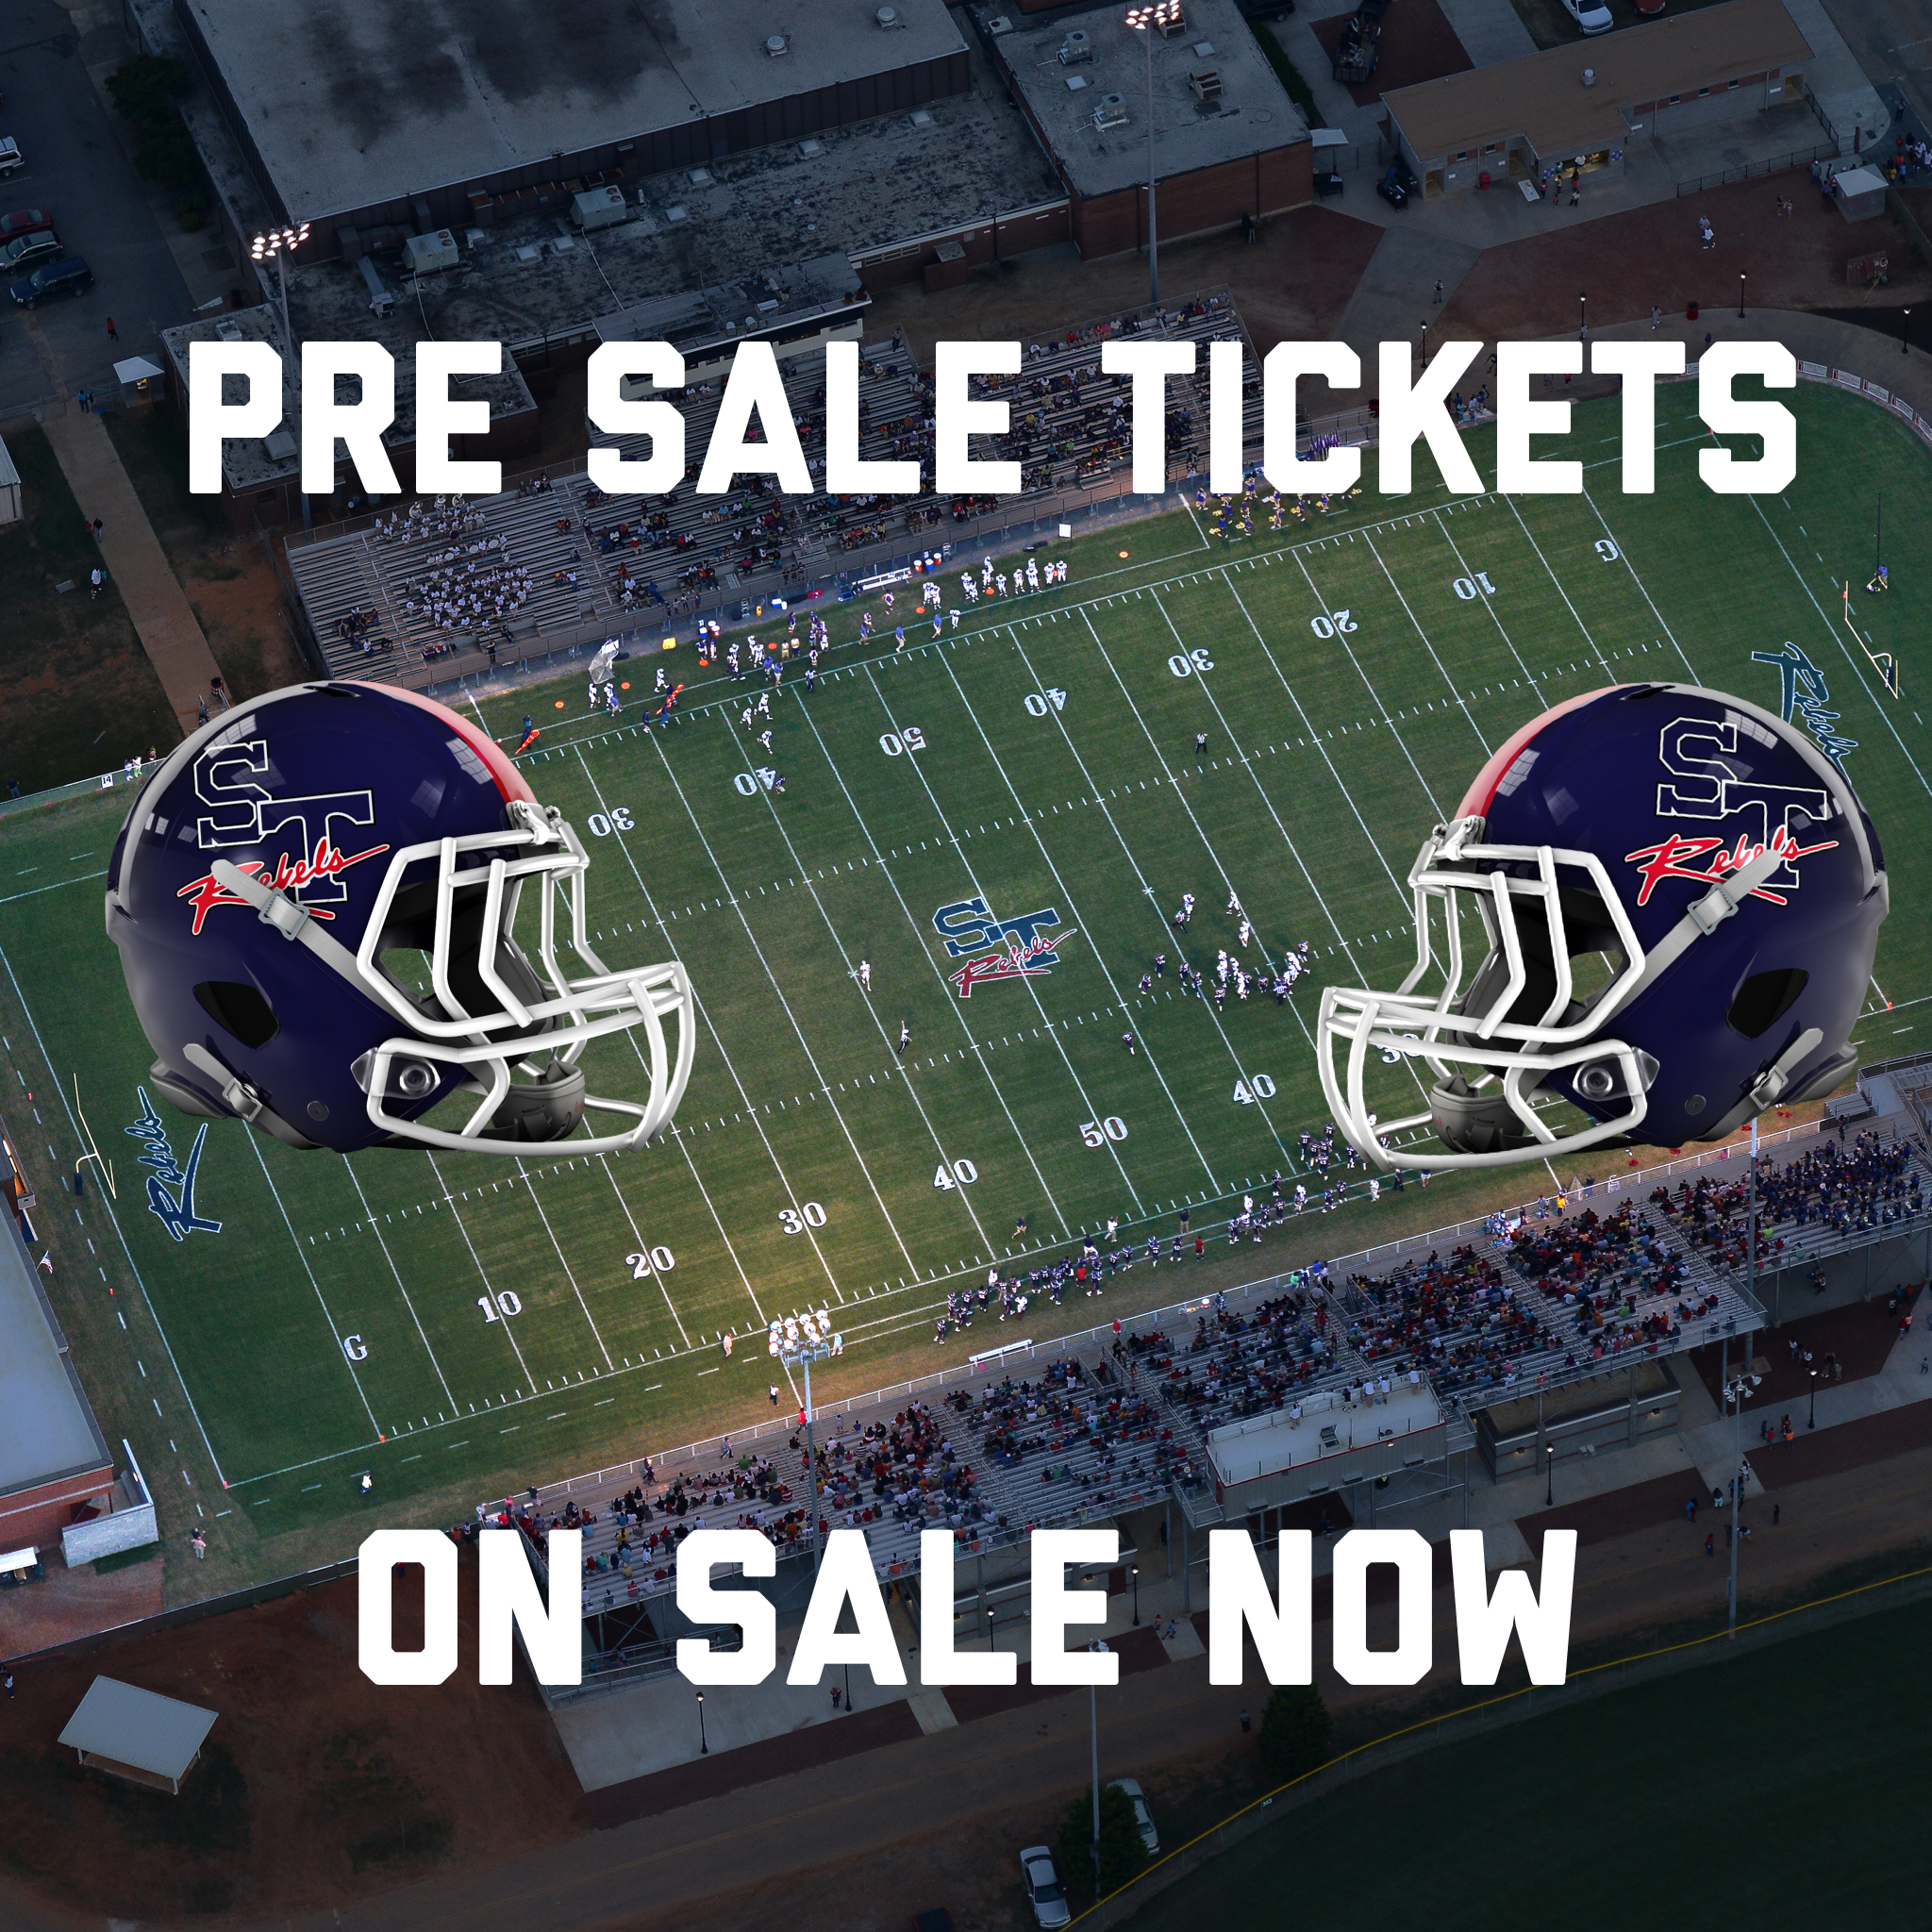 Pre Sale Tickets Available for Friday's Game @ Saluda